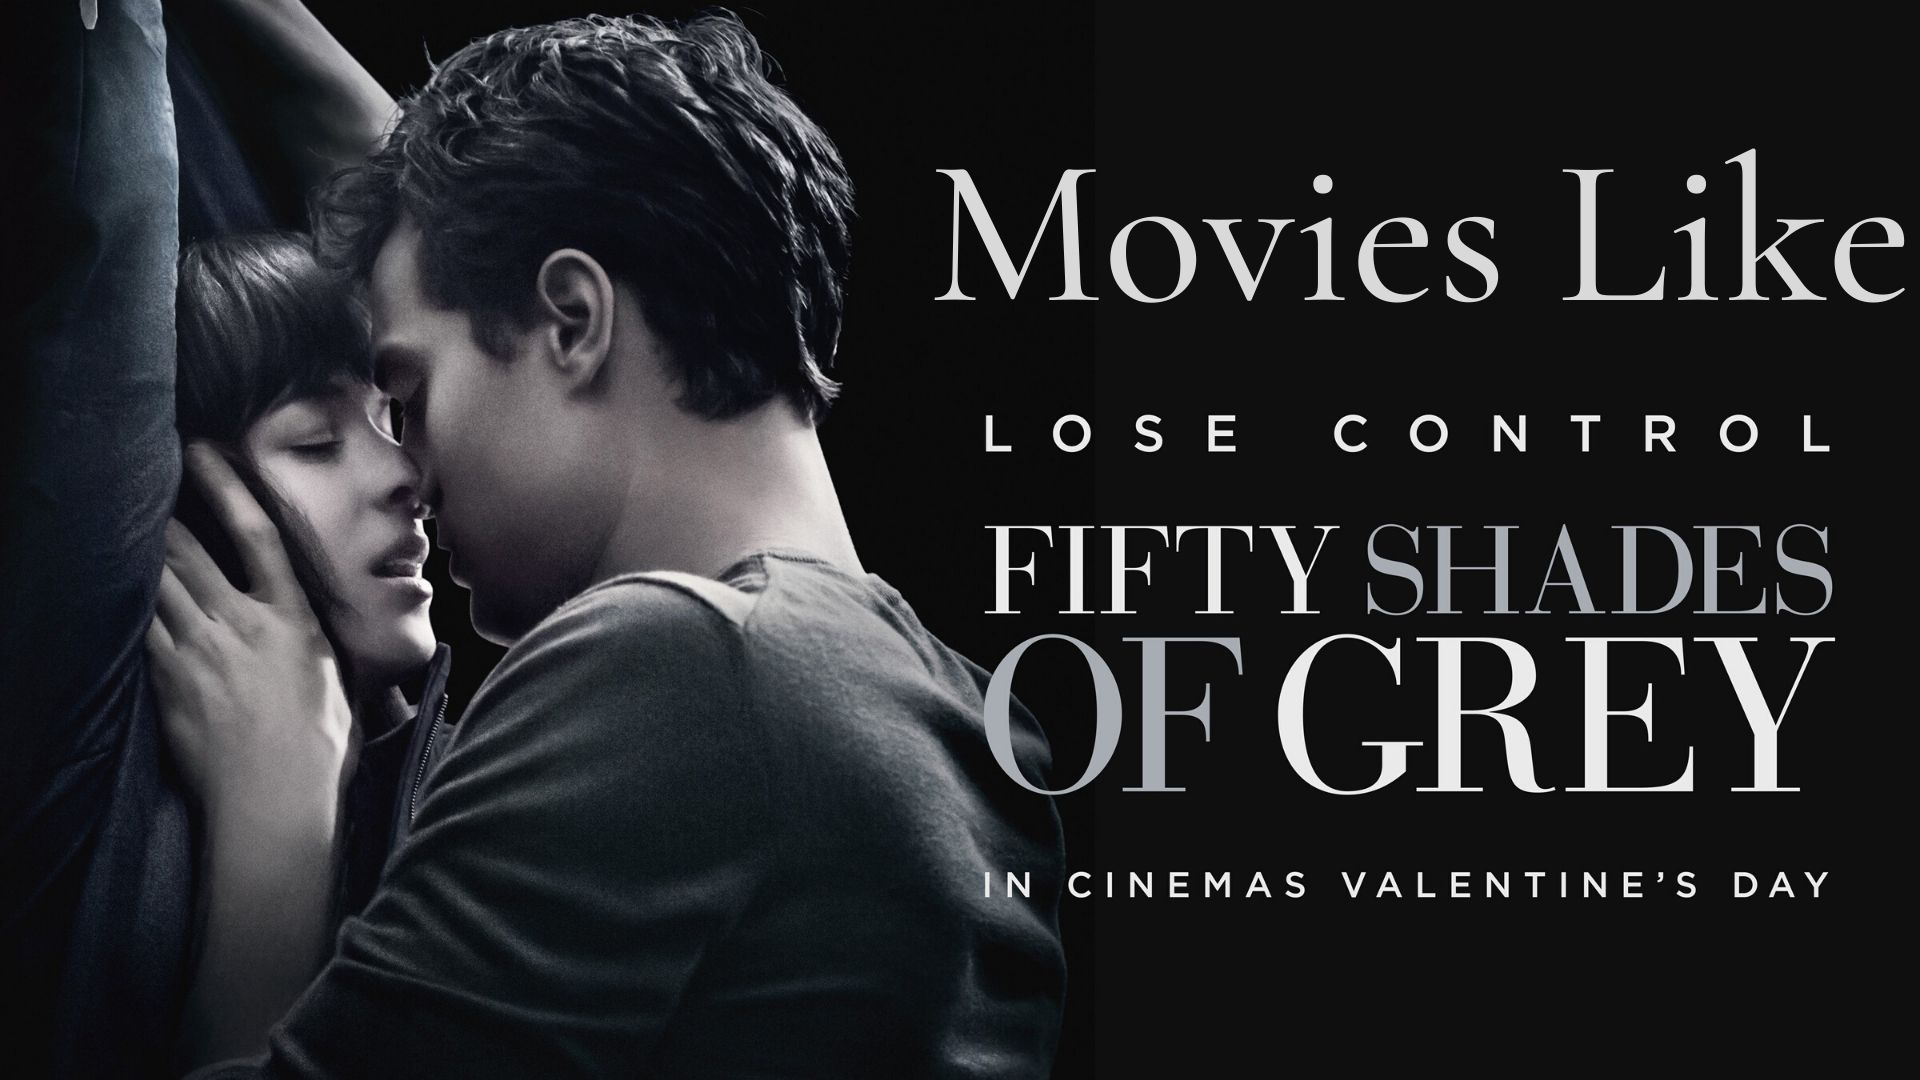 15 Best Movies Like Fifty Shades Of Grey You Will Love To Watch 2021